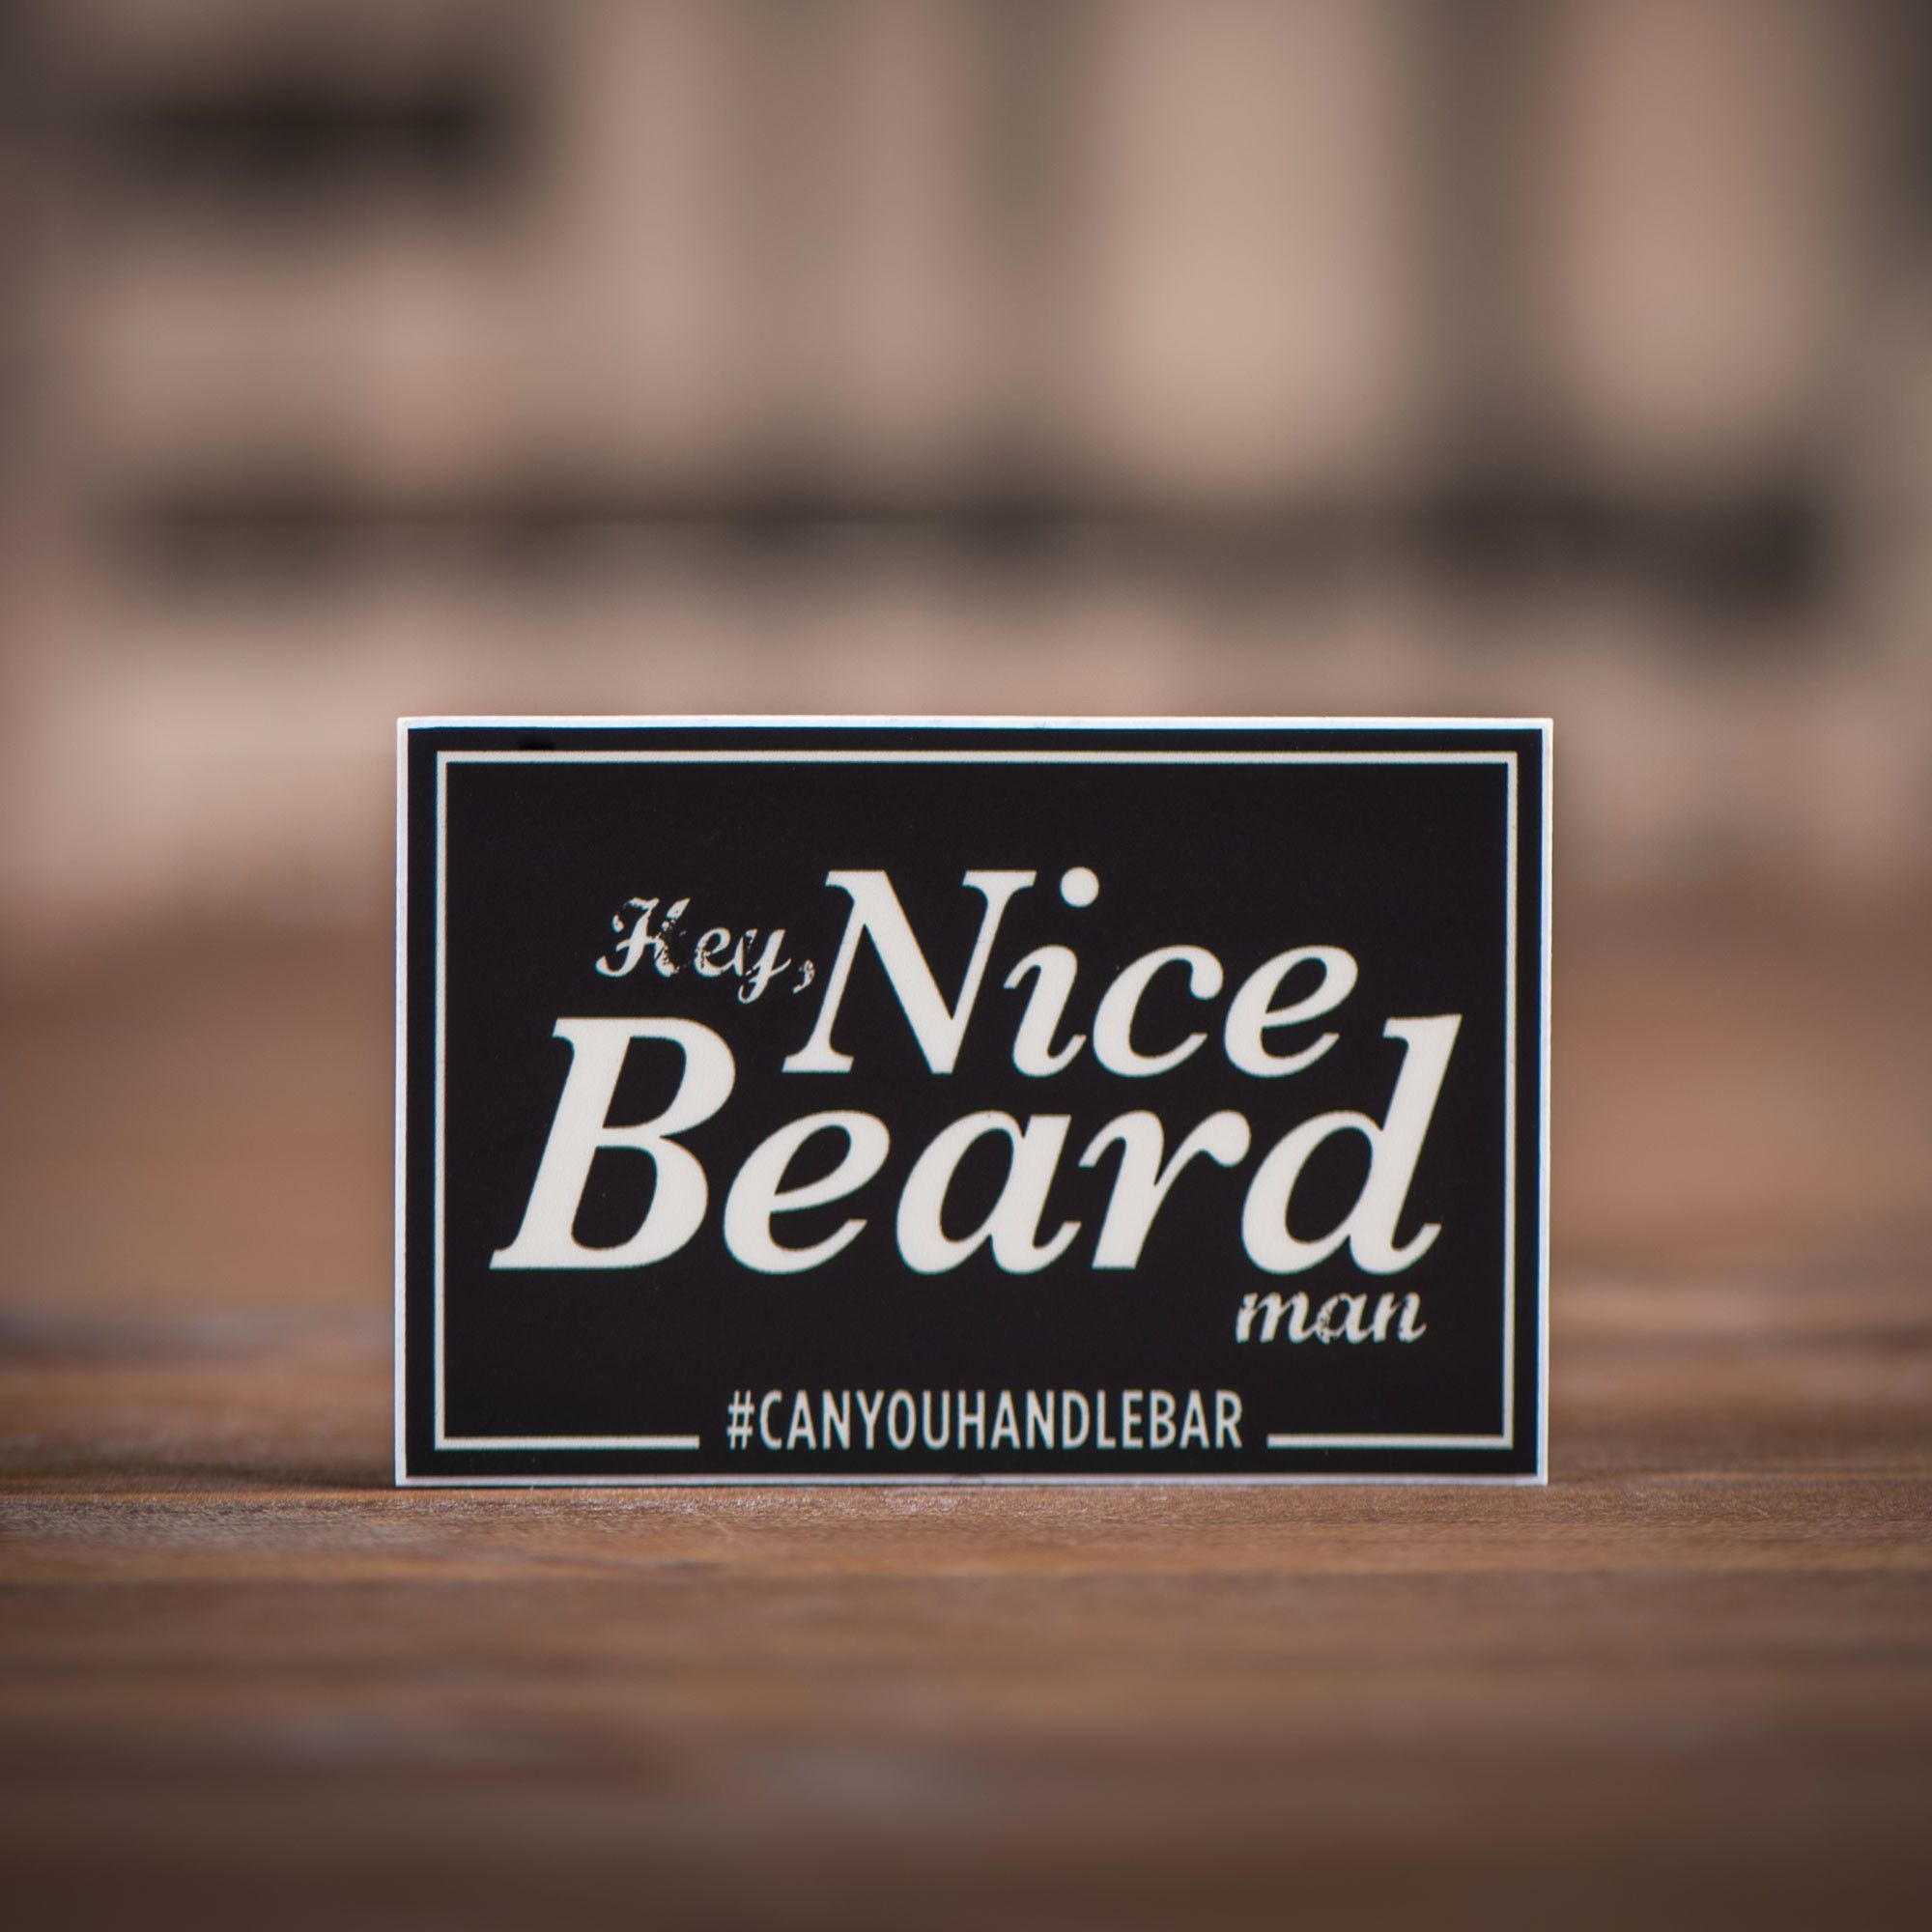 These 3x2 inch vinyl hey nice beard man stickers offer you a chance to slap some can you handlebar flair just about anywhere